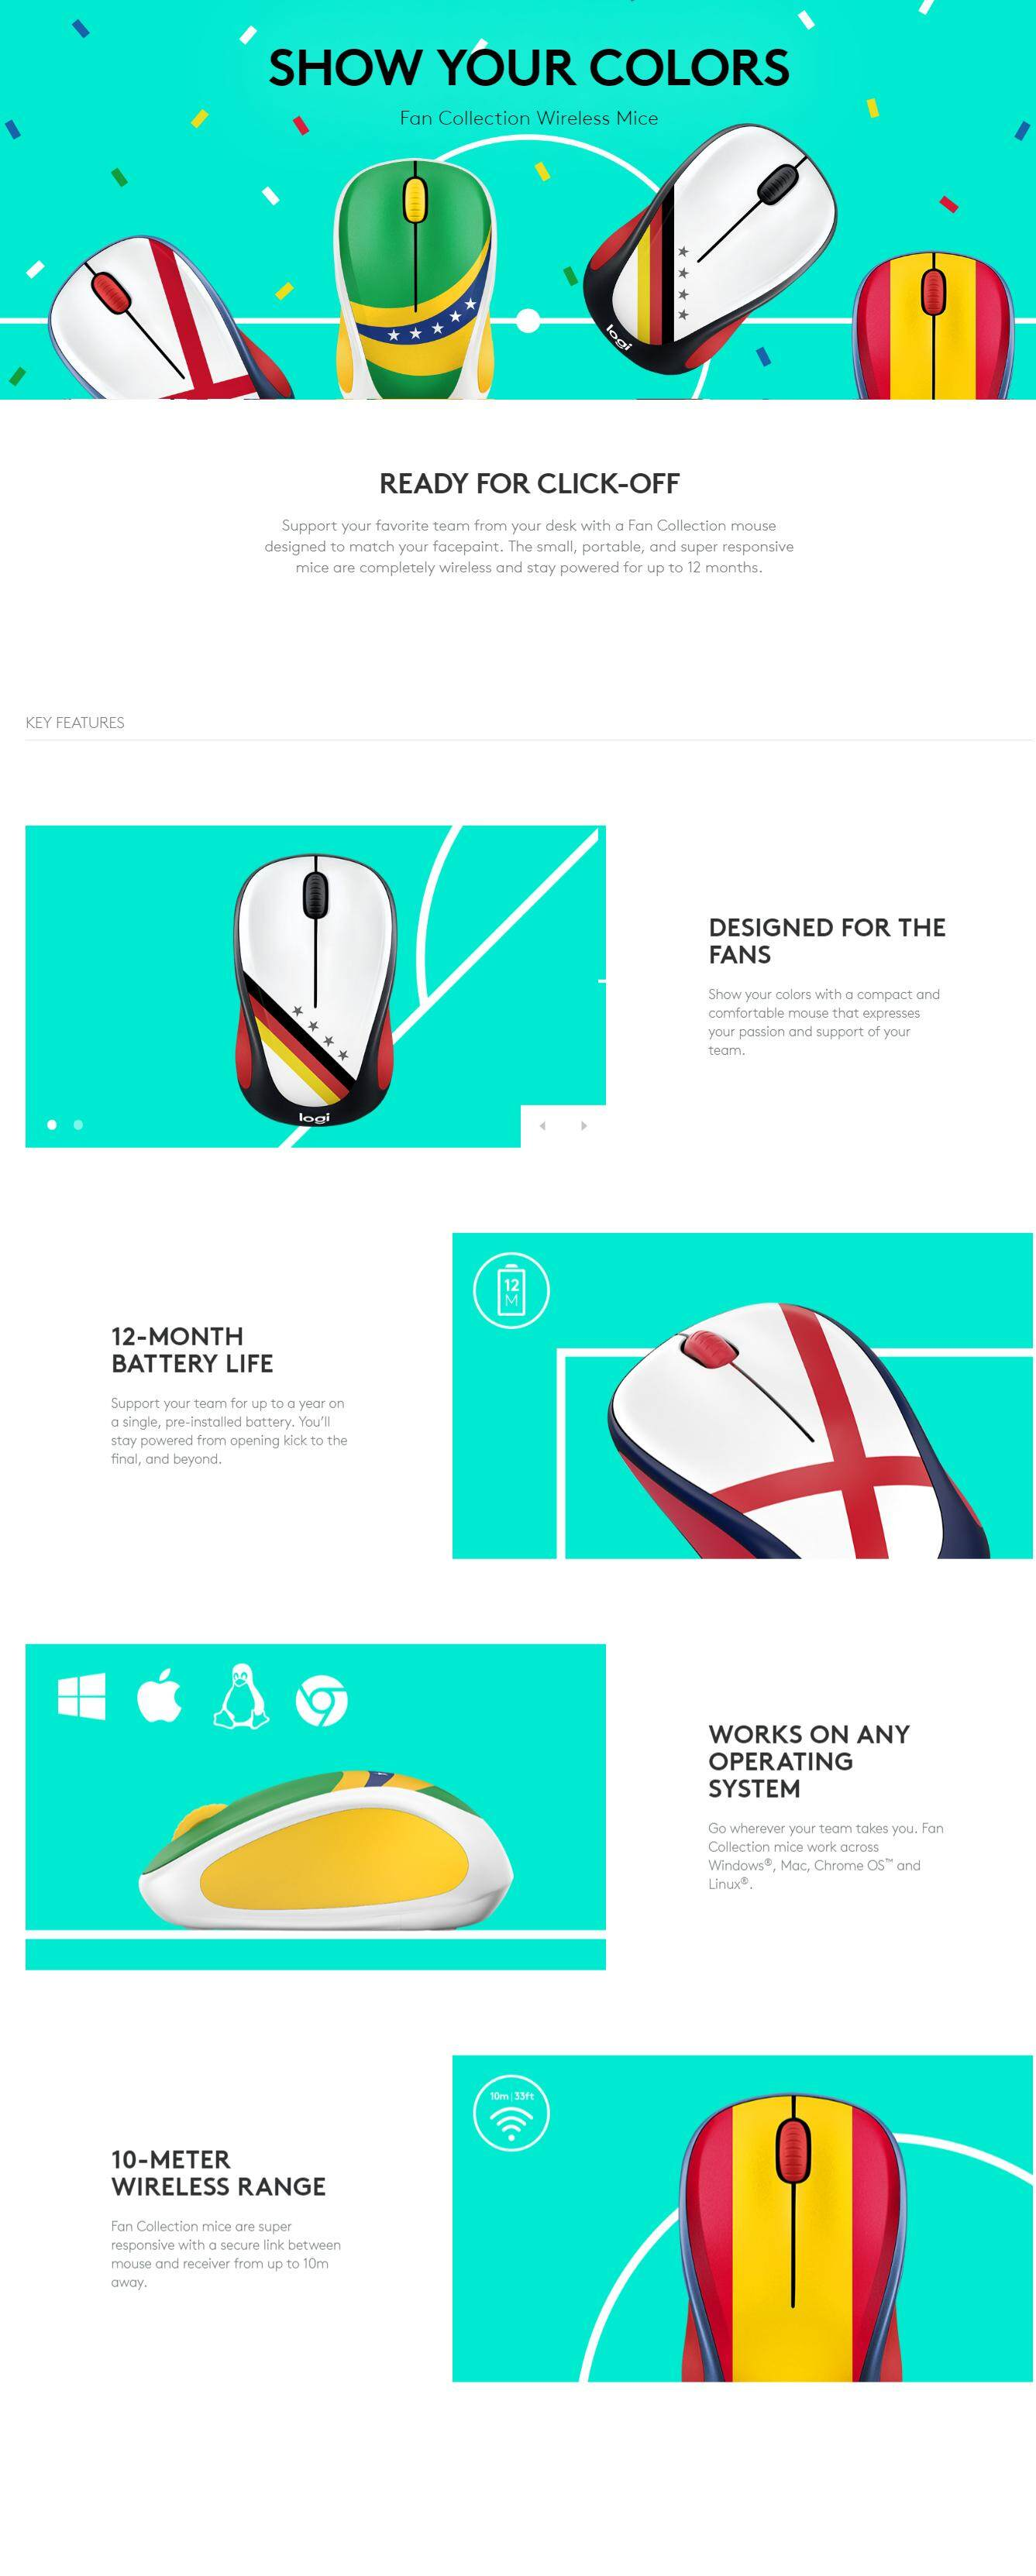 screencapture-logitech-en-my-product-m238-mouse-fan-collection-2018-04-04-18_26_08.png